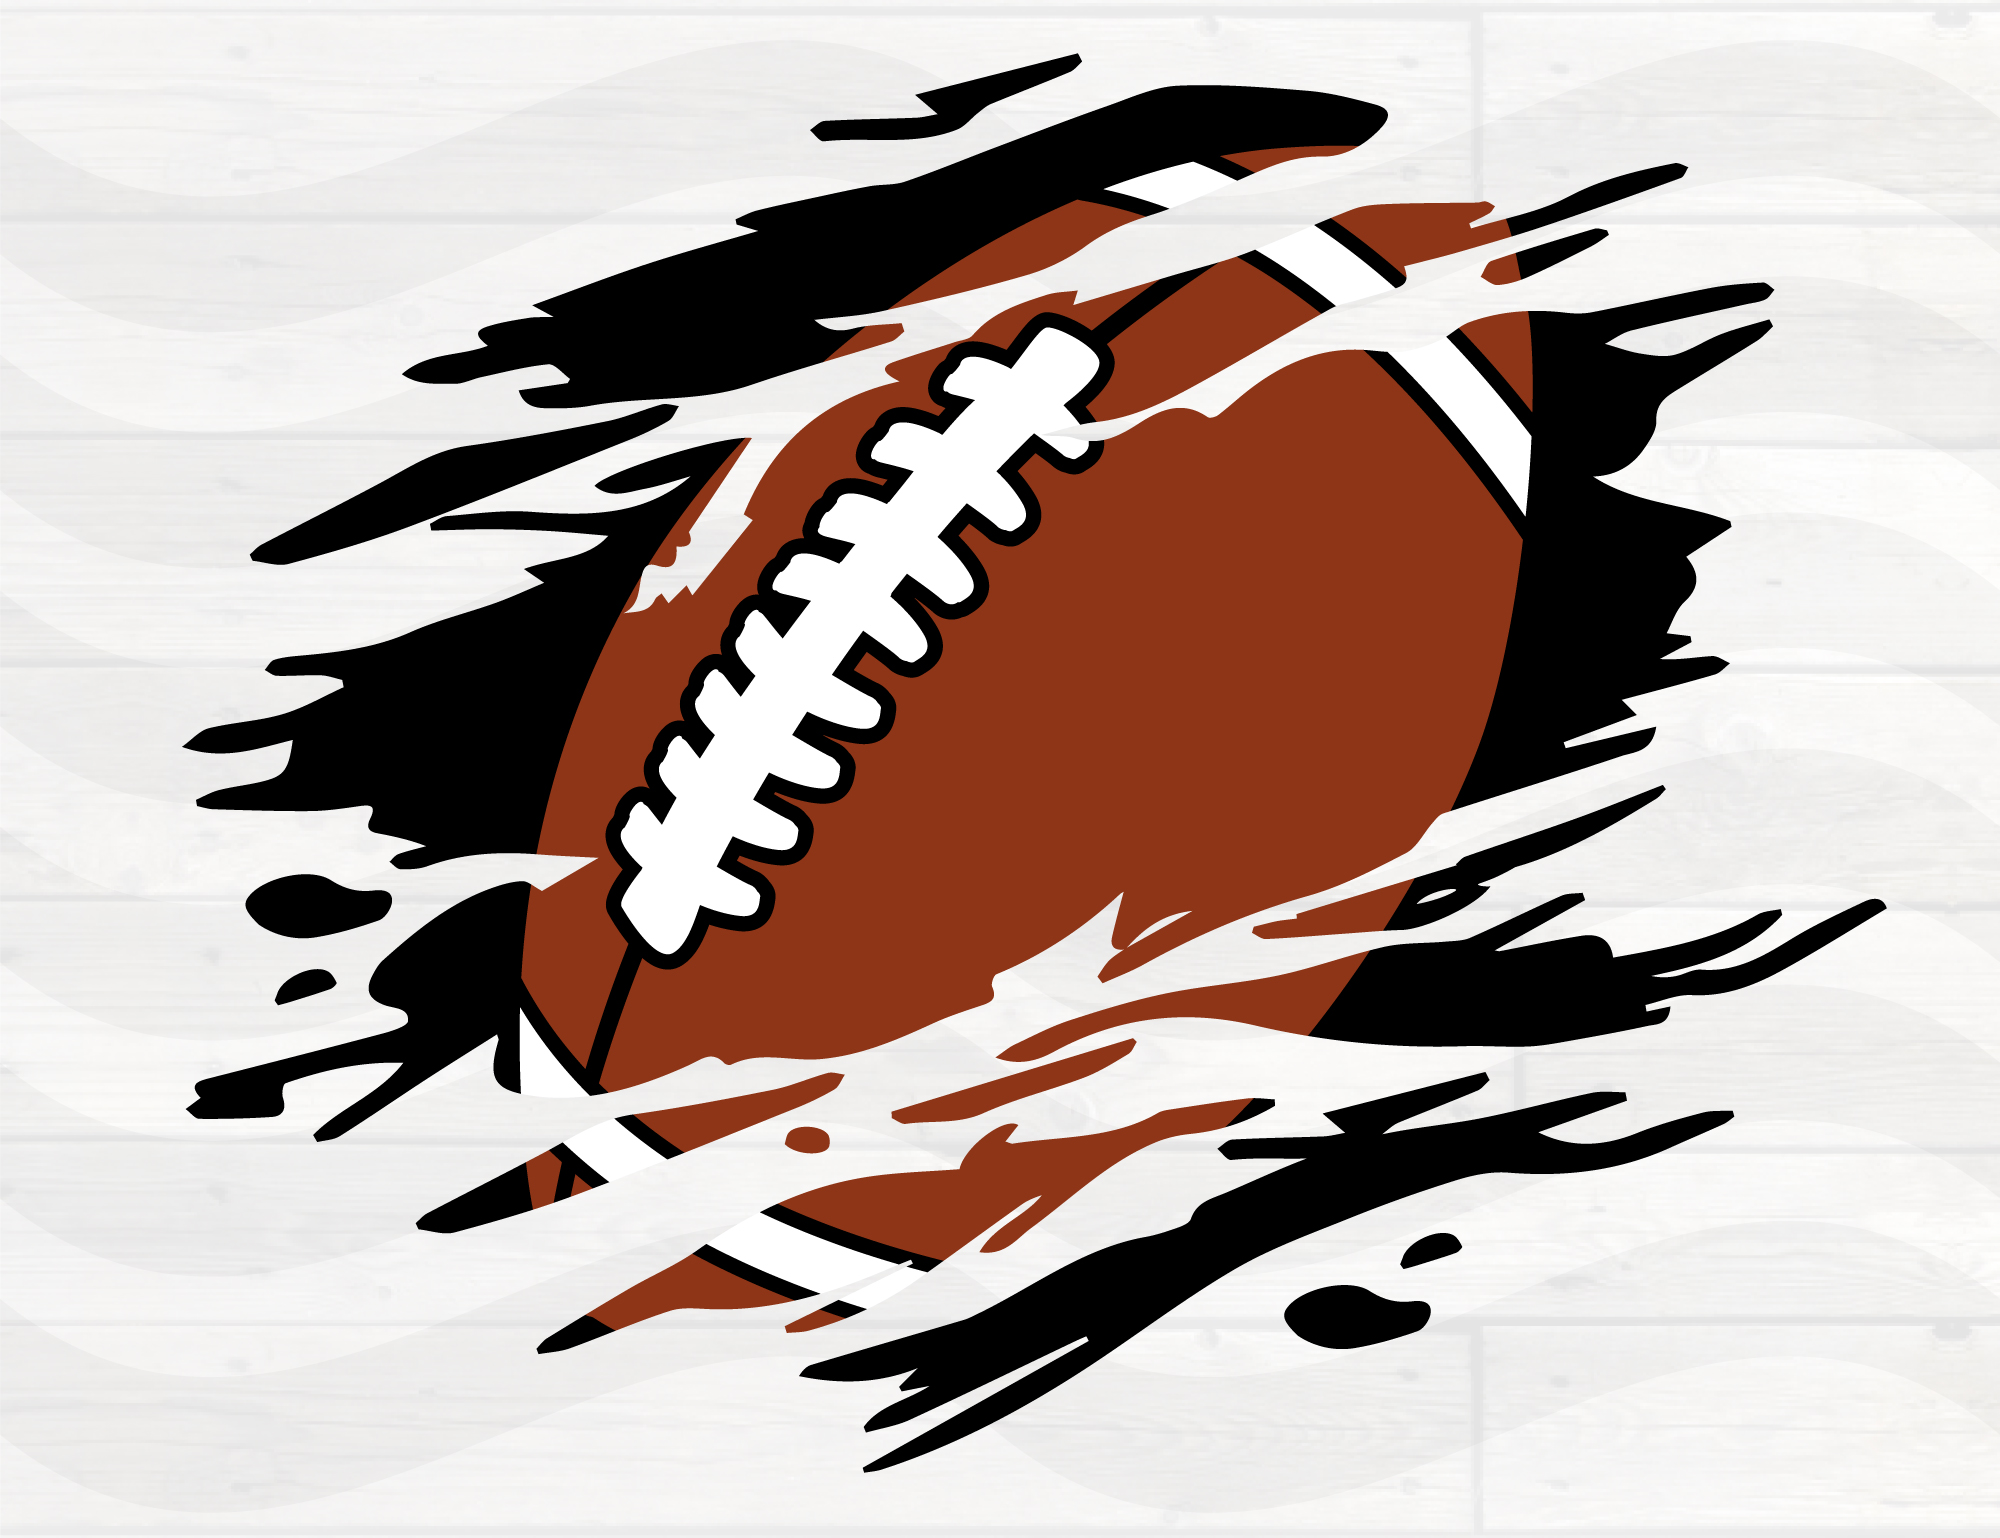 Download Free Football Distressed Torn Grunge Graphic By Nicetomeetyou for Cricut Explore, Silhouette and other cutting machines.